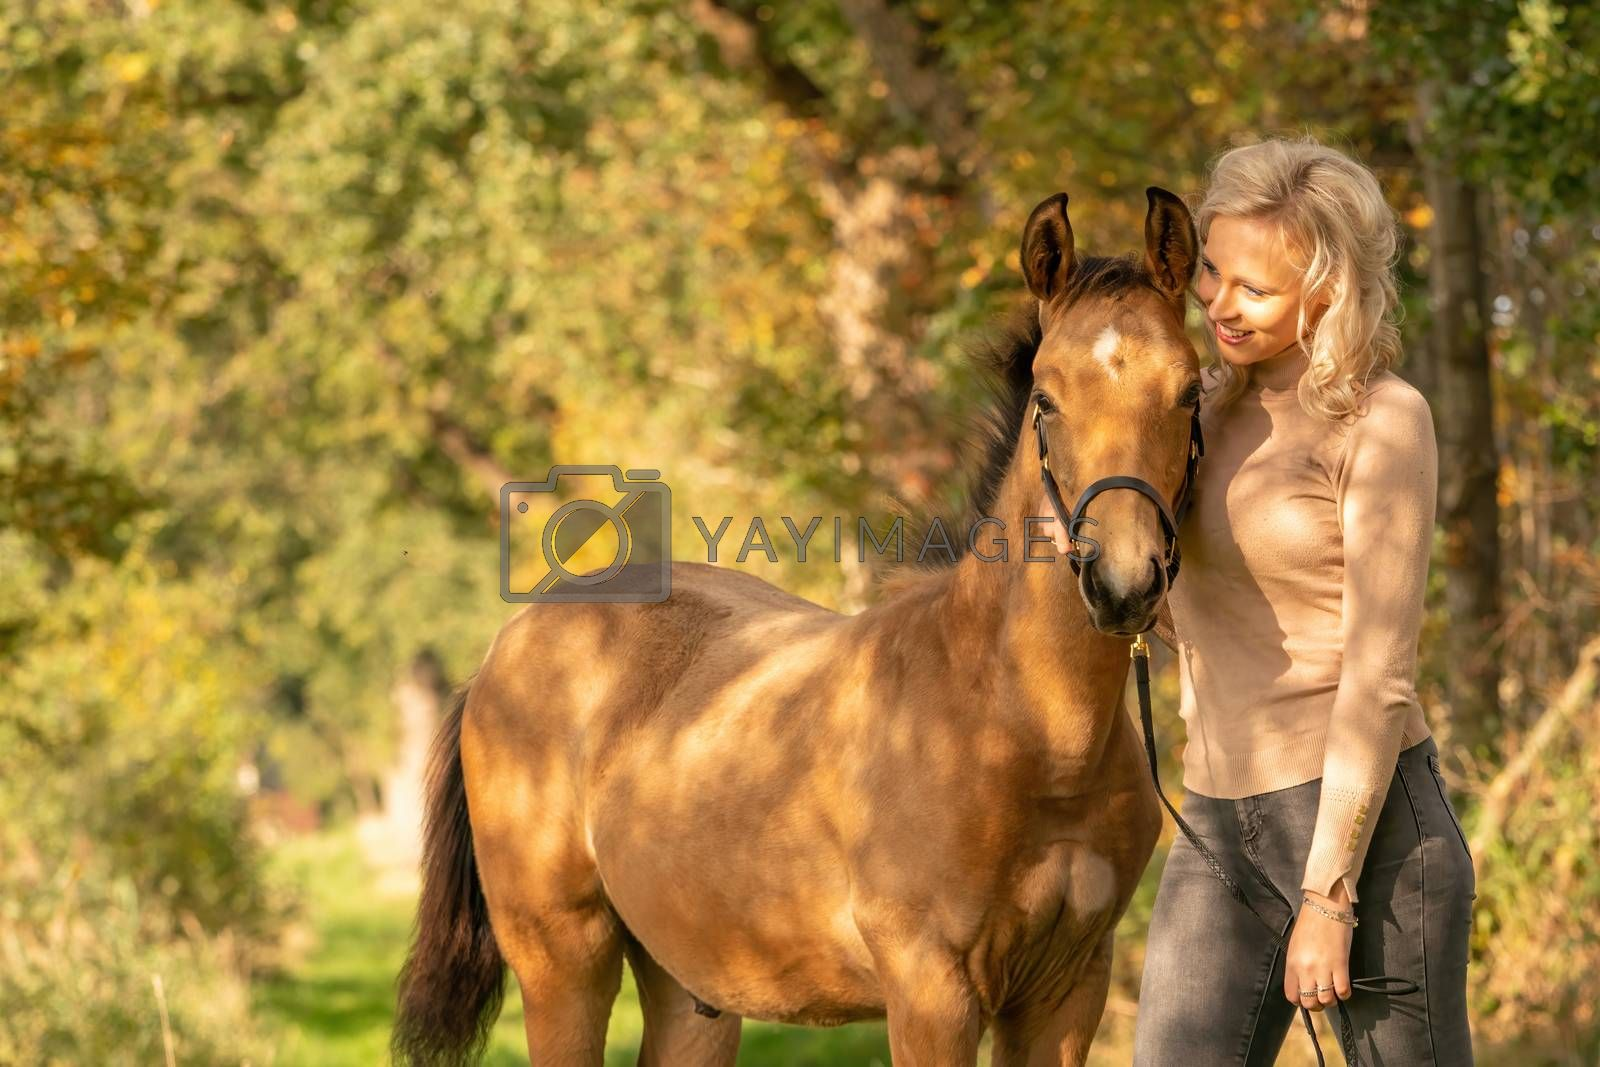 Portrait of a yellow, brown foal and a young woman in casual cloths. Autumn trees in background , golden sunlight.